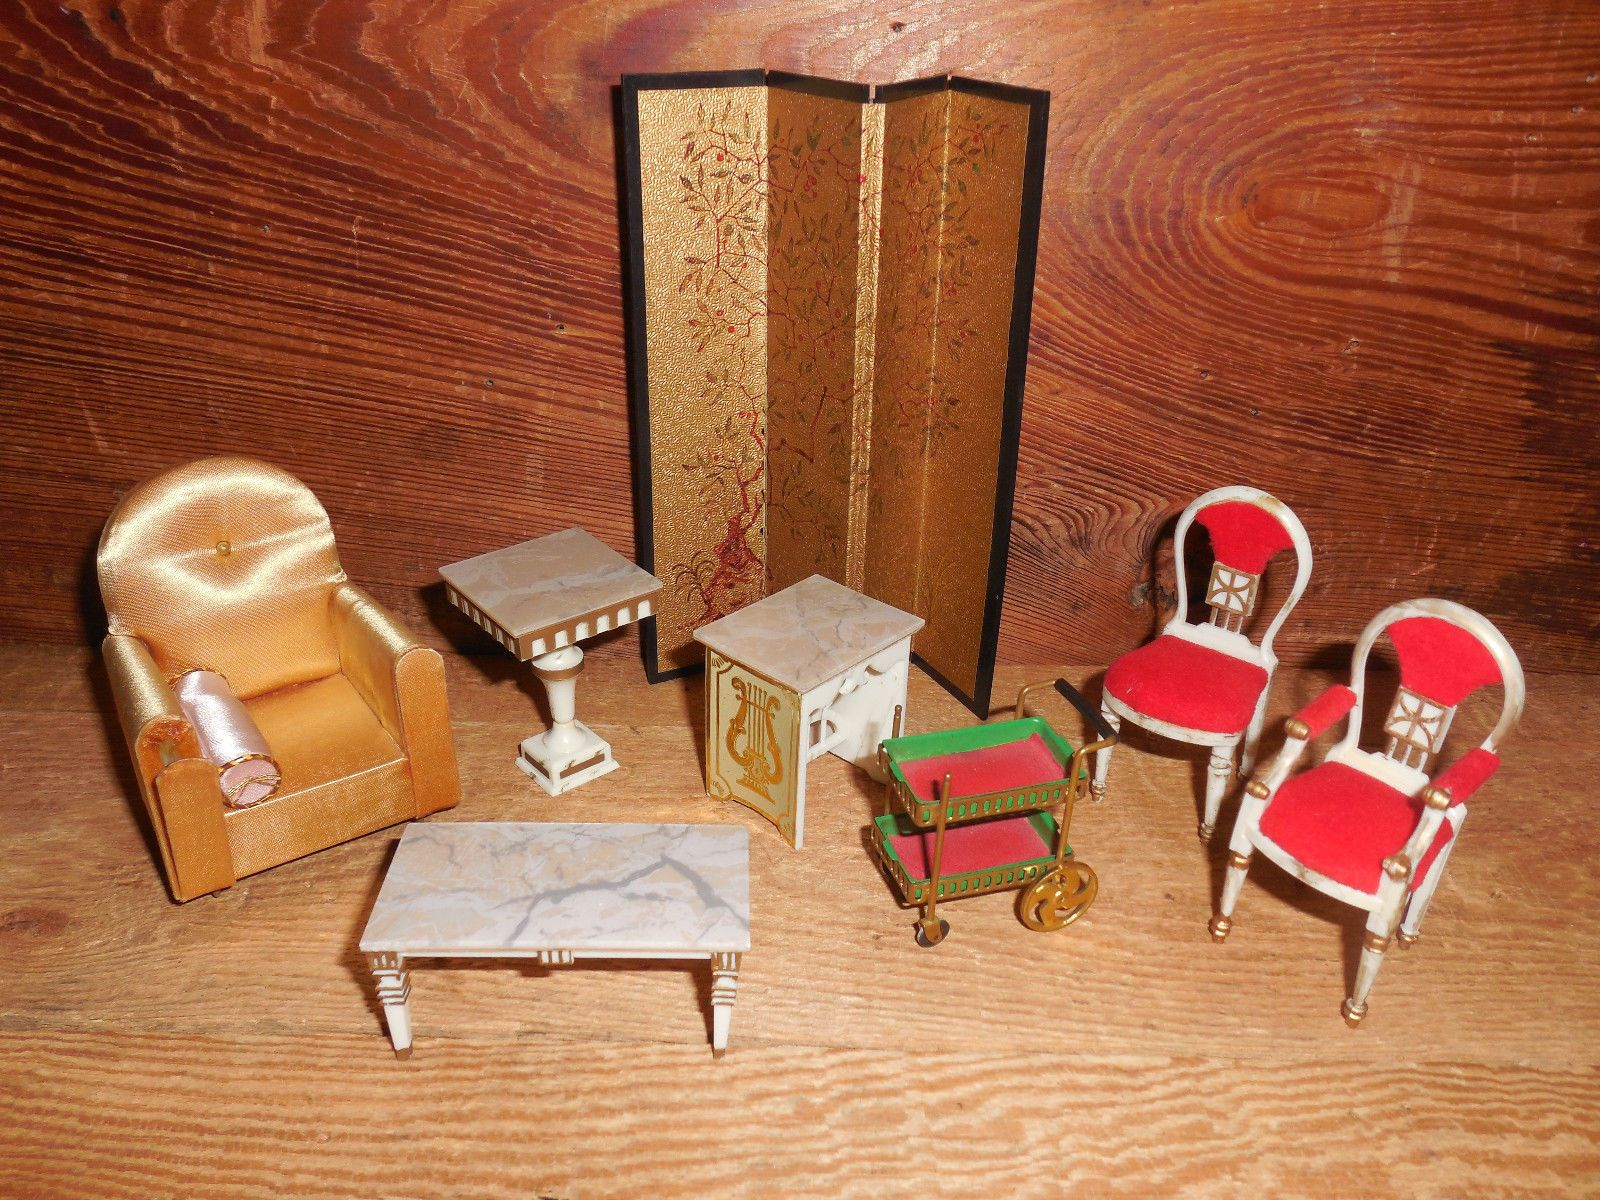 in Dolls & Bears, Dollhouse Miniatures, Furniture & Room Items